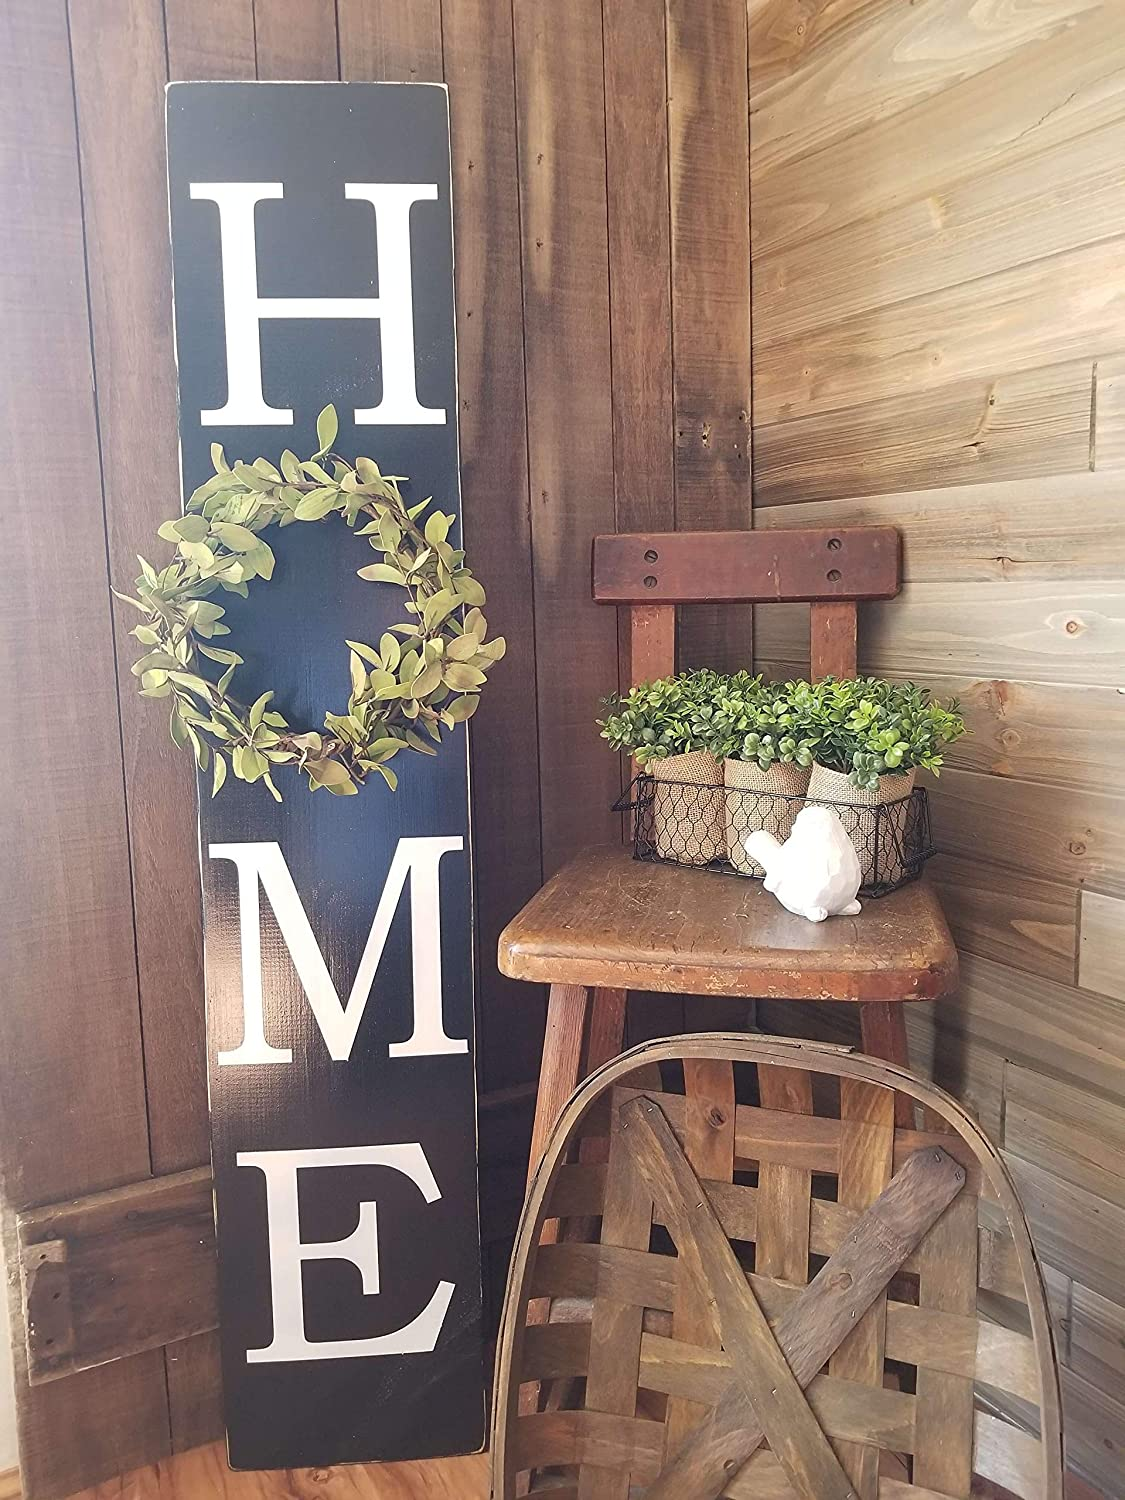 5db7844dfe07c Amazon.com: Home sign with wreath, vertical home wall decor, rustic ...